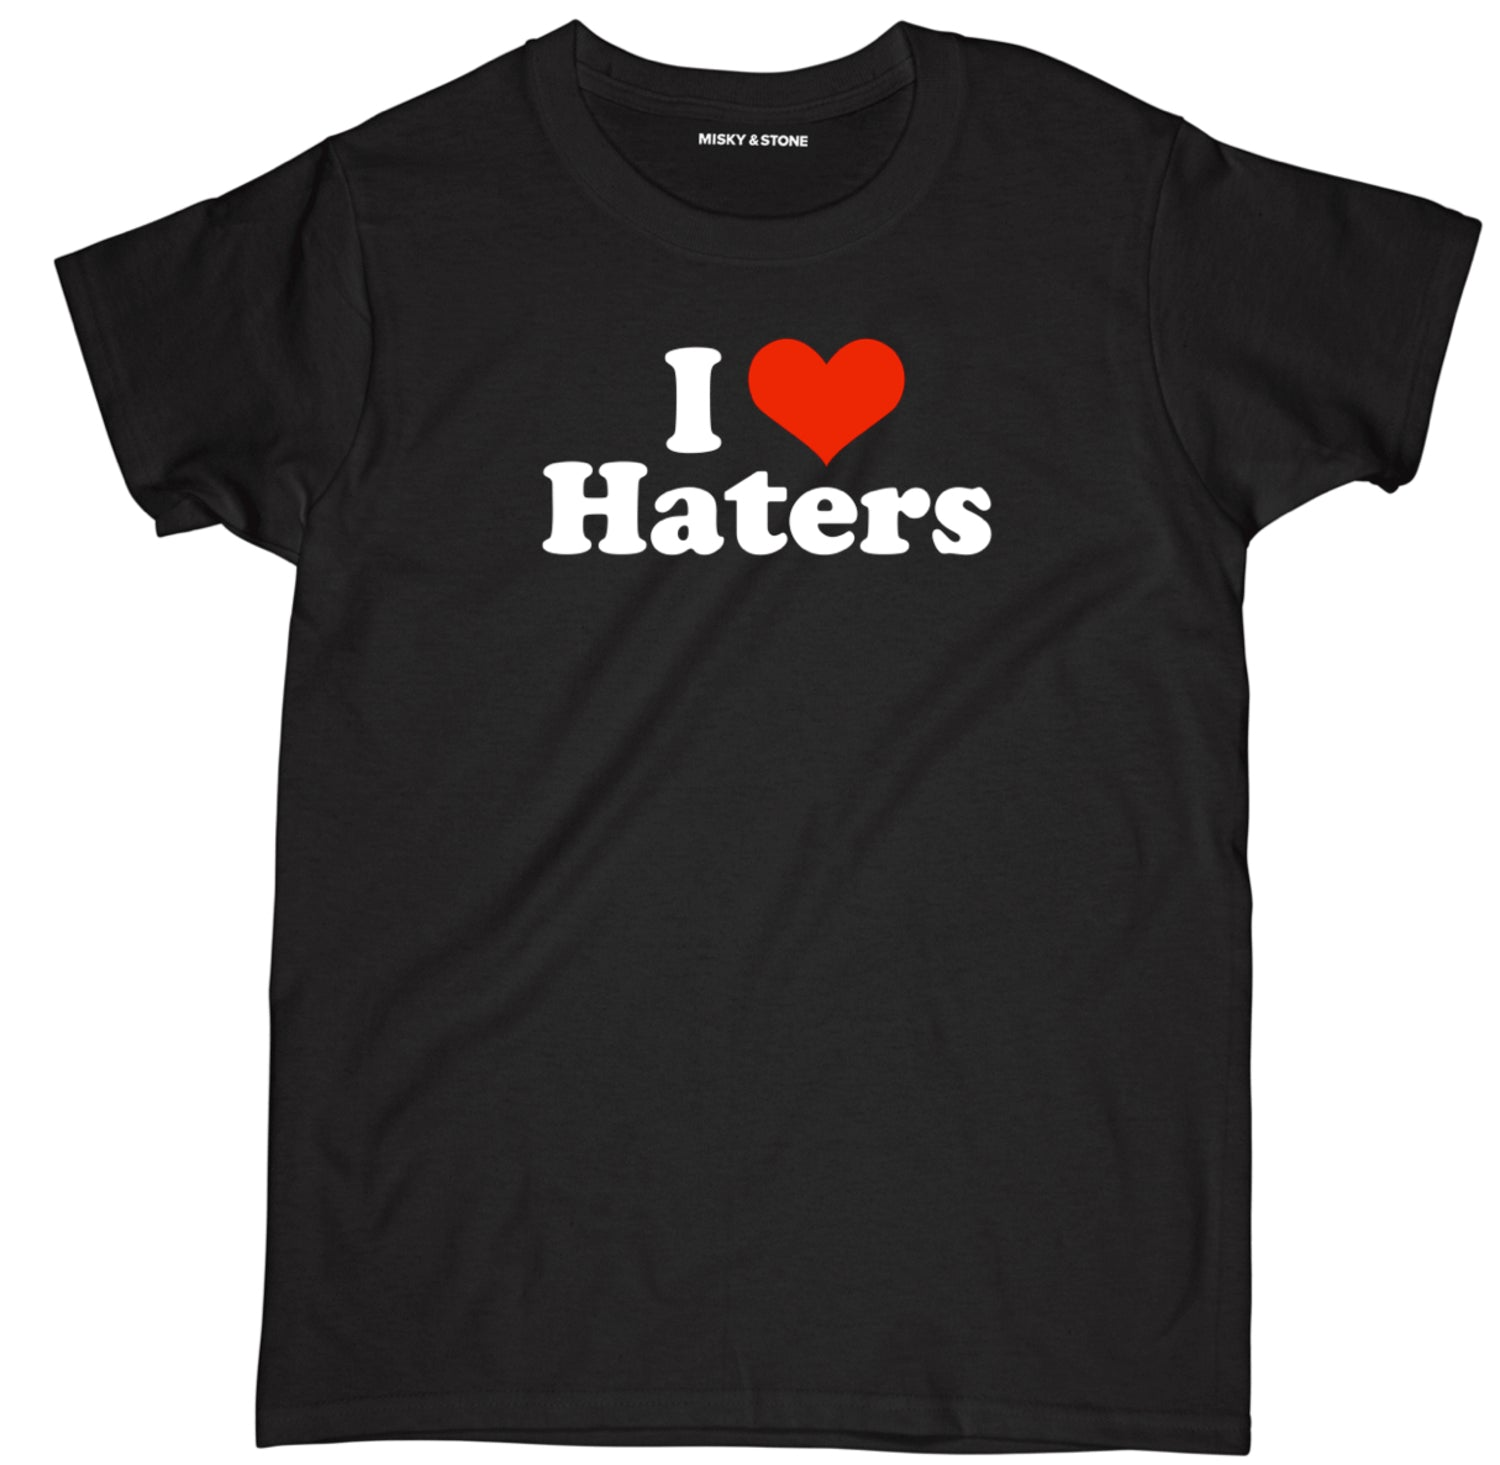 i love haters t shirt, i love haters shirt, i love haters tee,